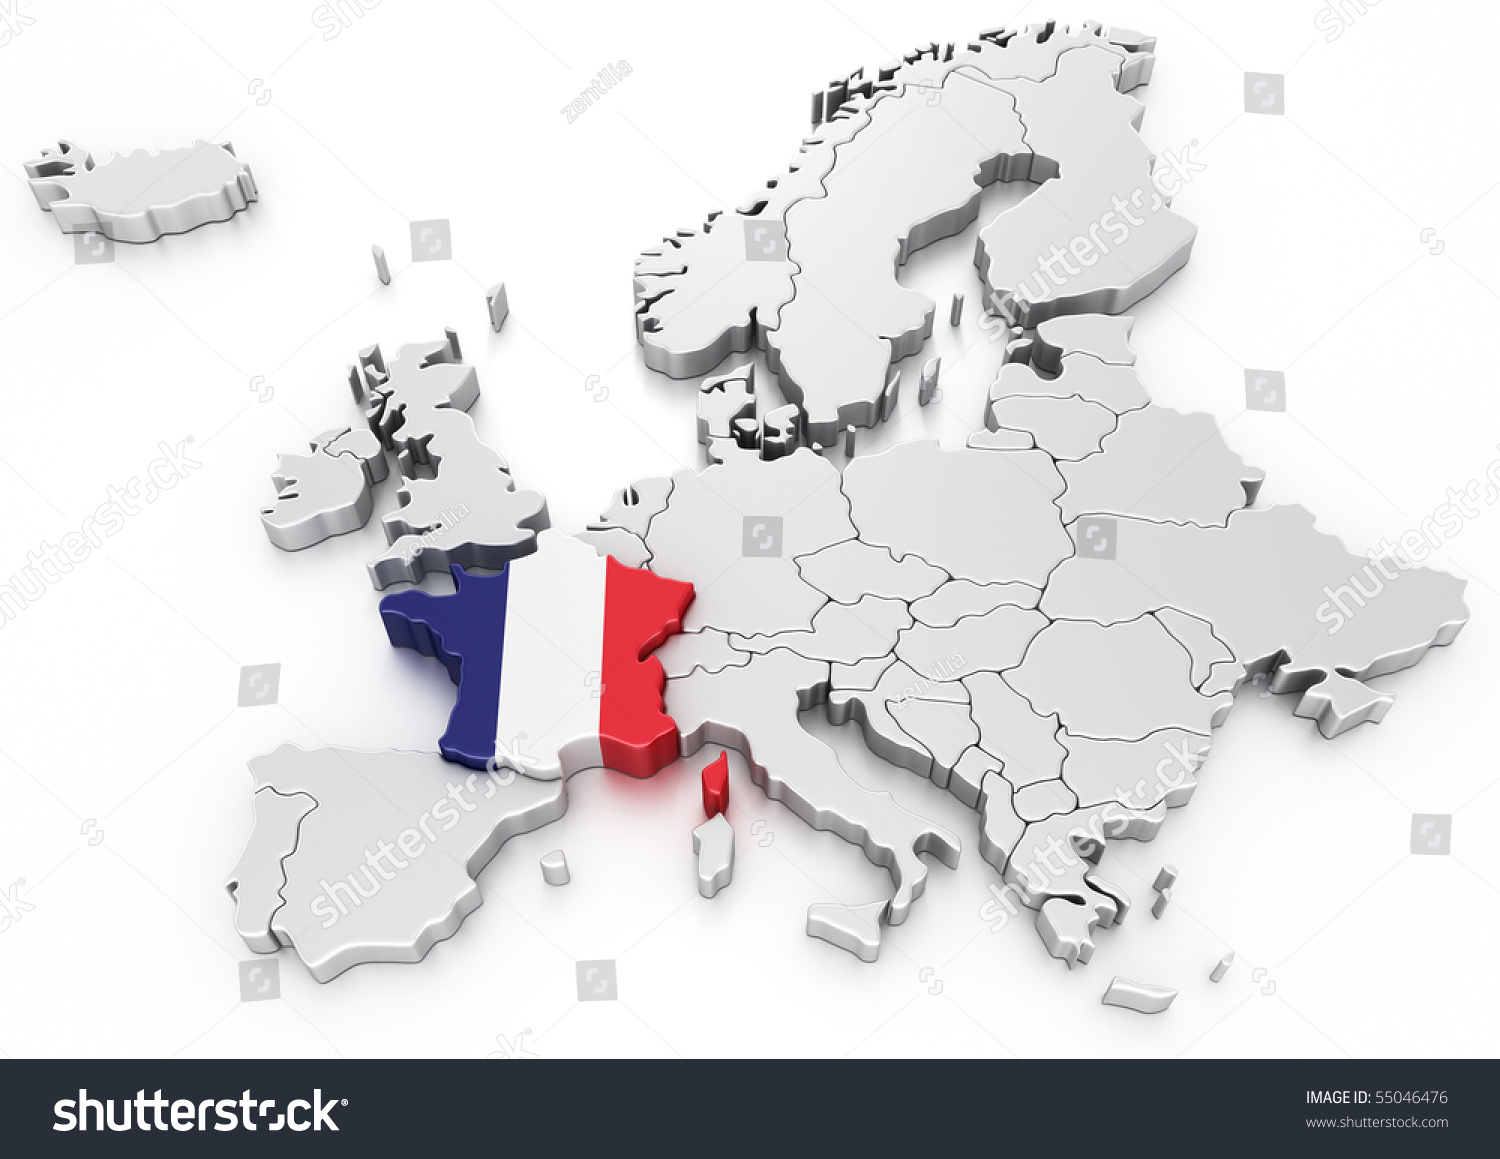 3 d rendering map europe france selected stock illustration 55046476 3d rendering of a map of europe with france selected gumiabroncs Gallery